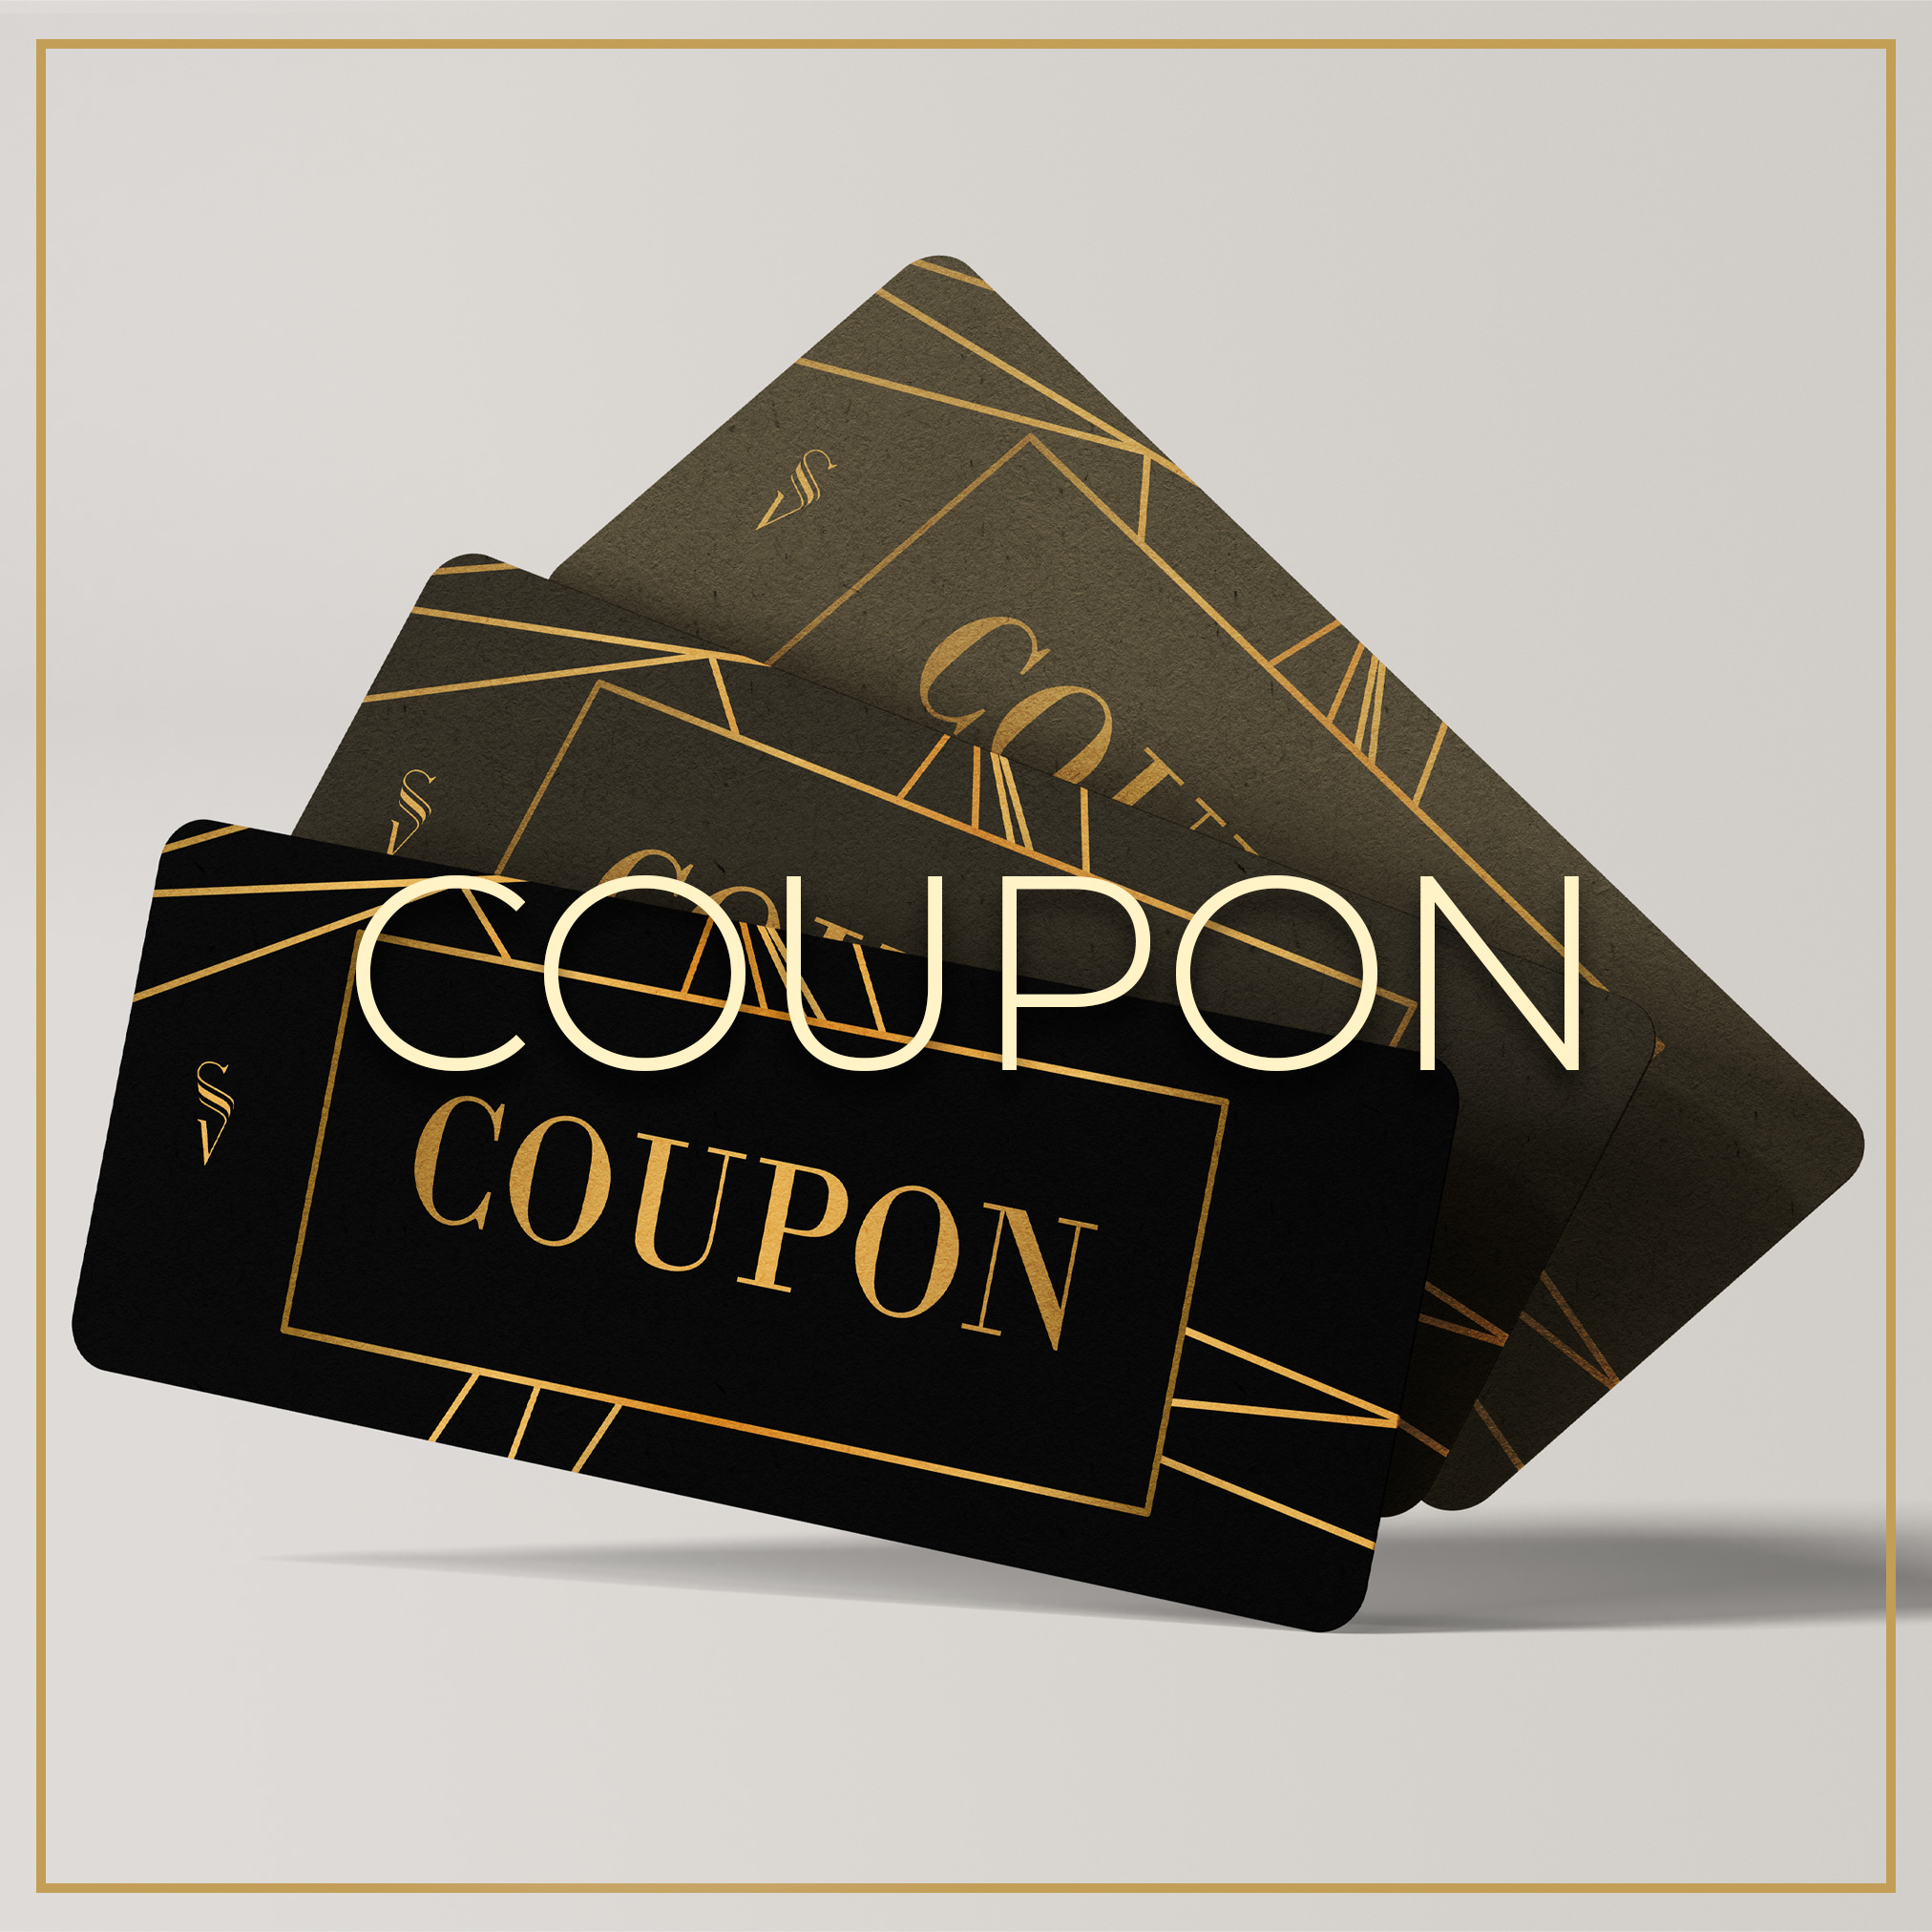 SaraVecchiSalon - Coupon